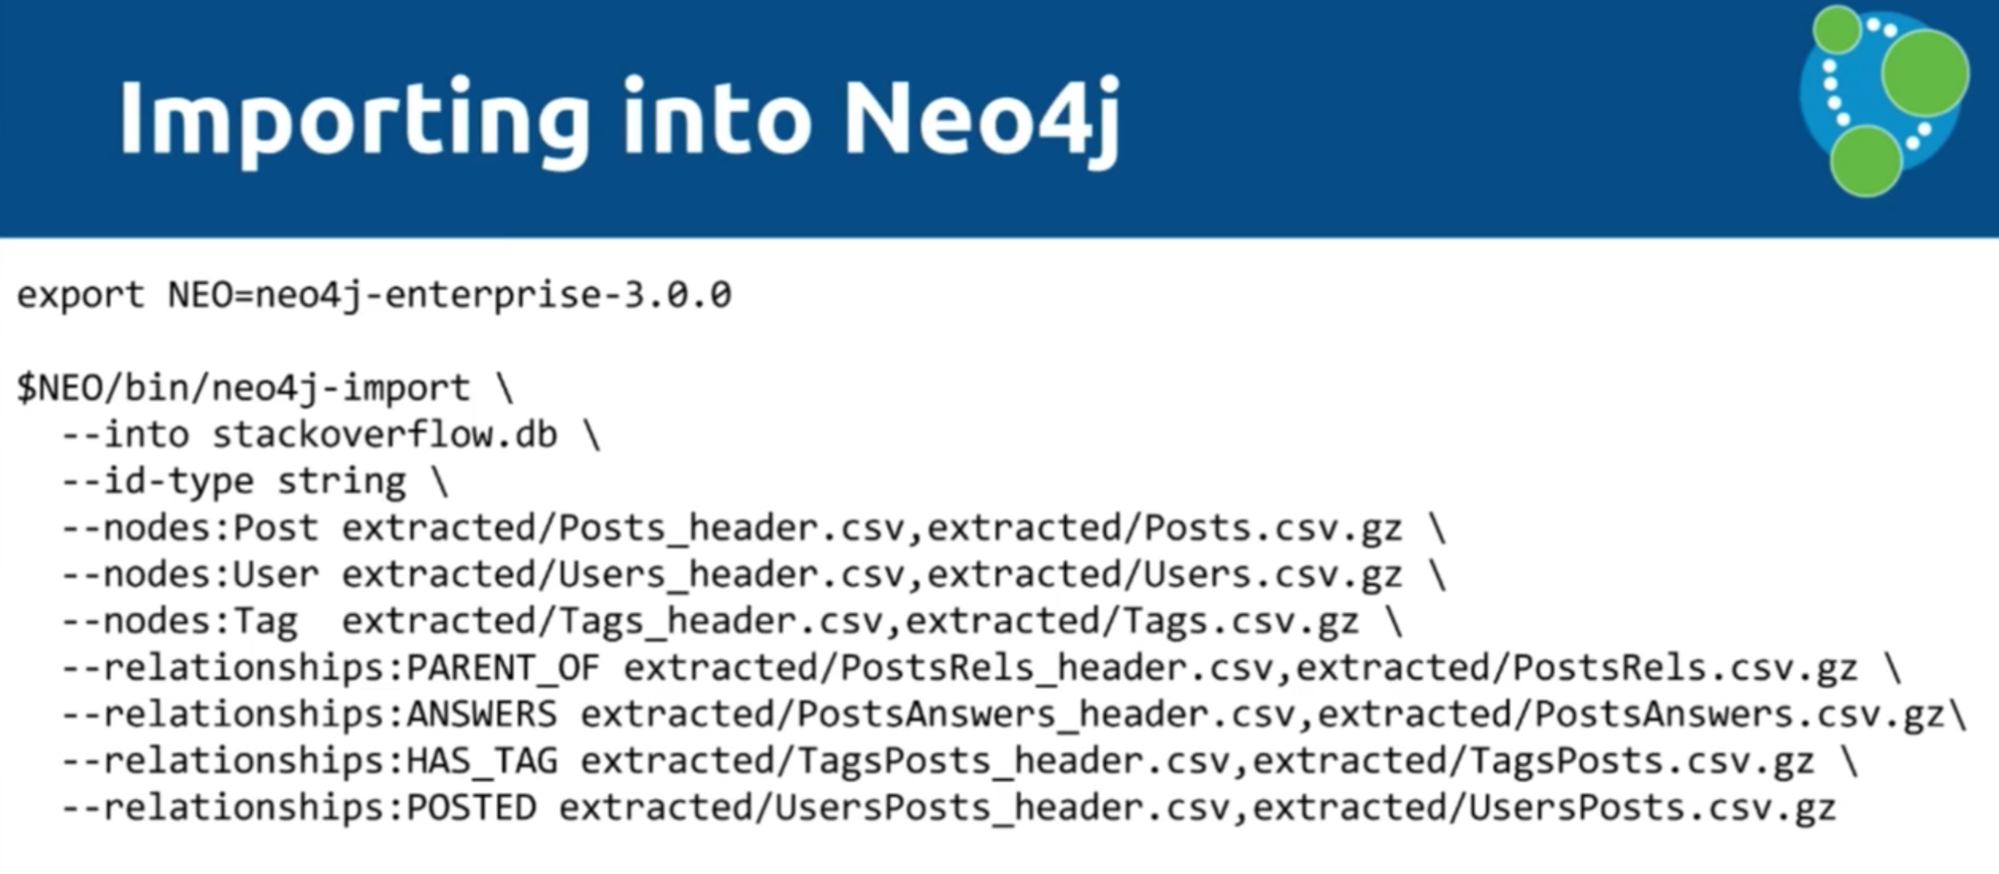 The Neo4j data import process